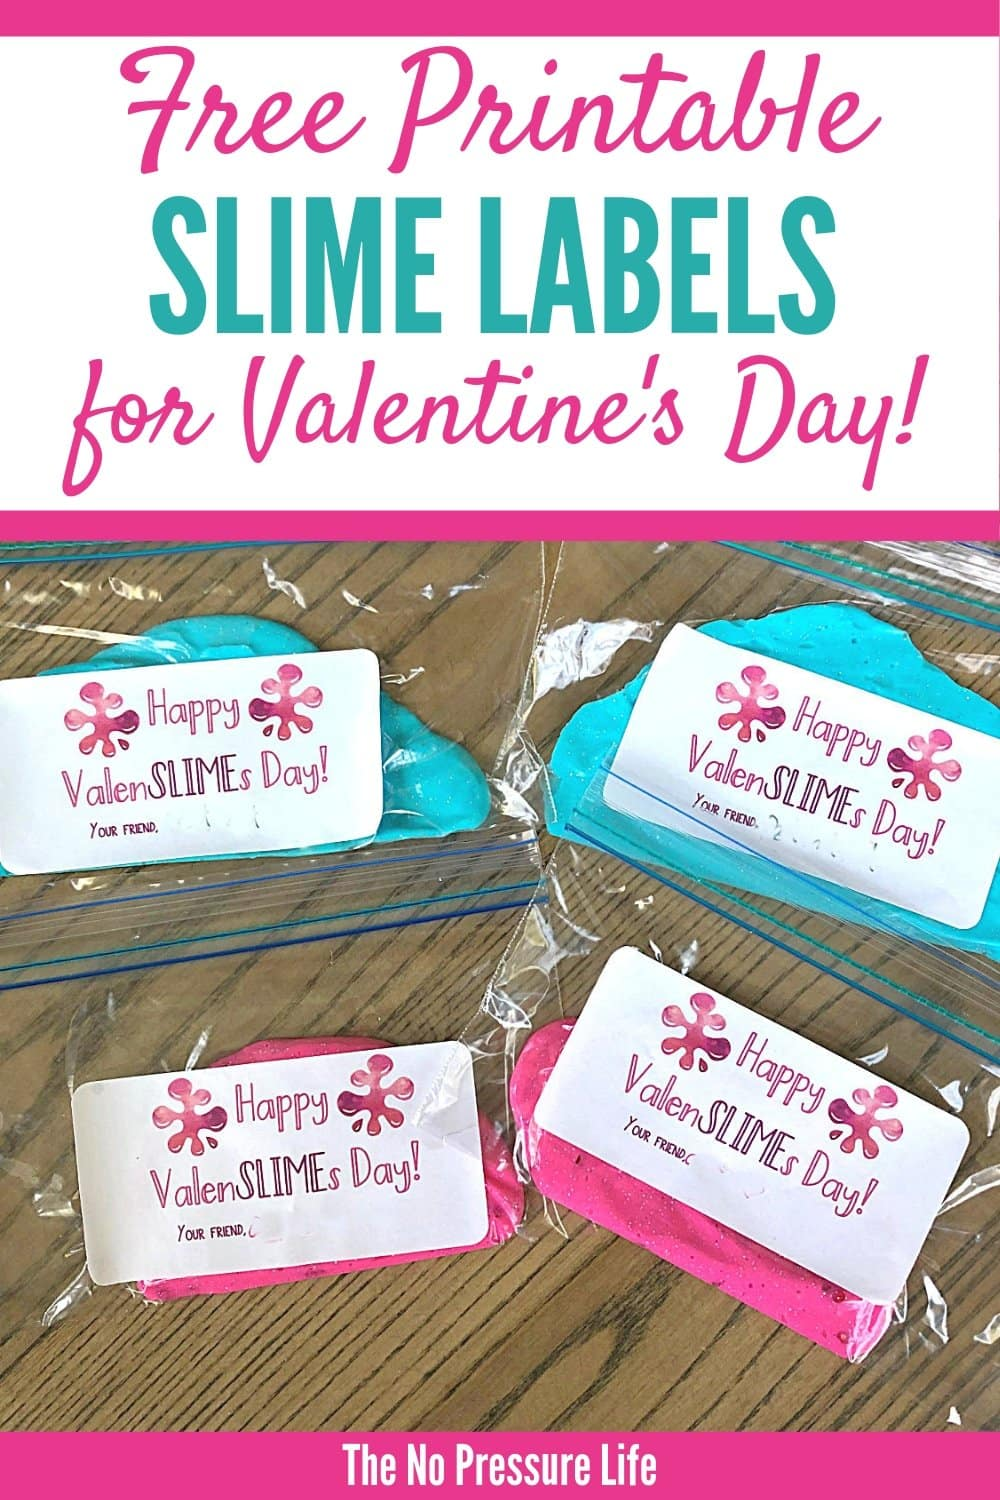 Valentine Slime Printable Labels - Slime Valentines for Classroom card exchange in baggies with free printable labels